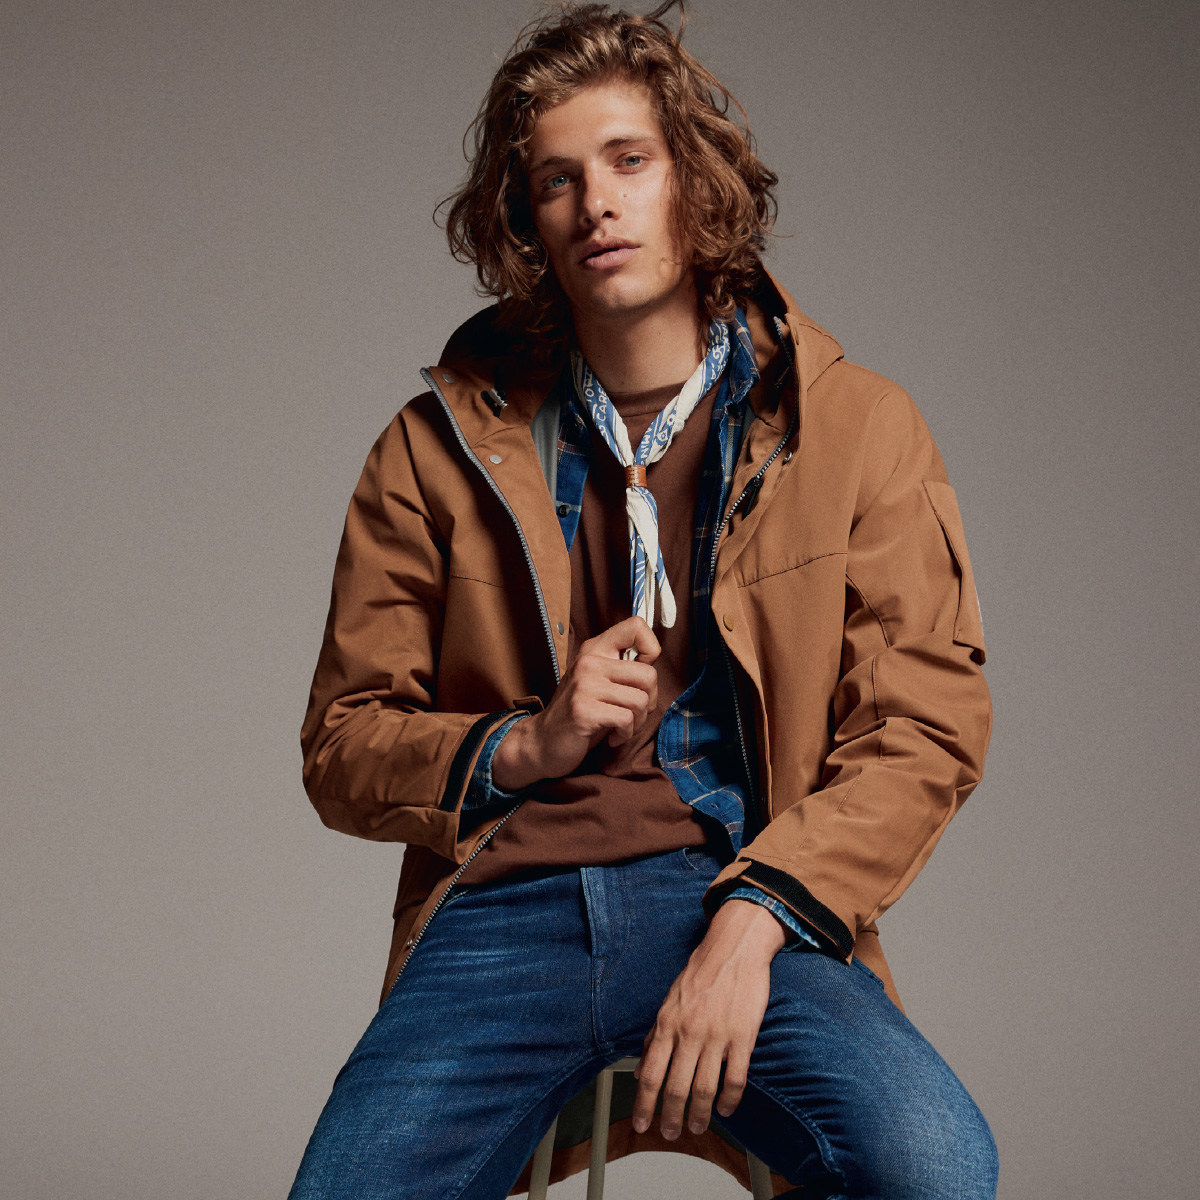 A man dressed in blue Replay jeans and a brown jacket sitting casually on a stool